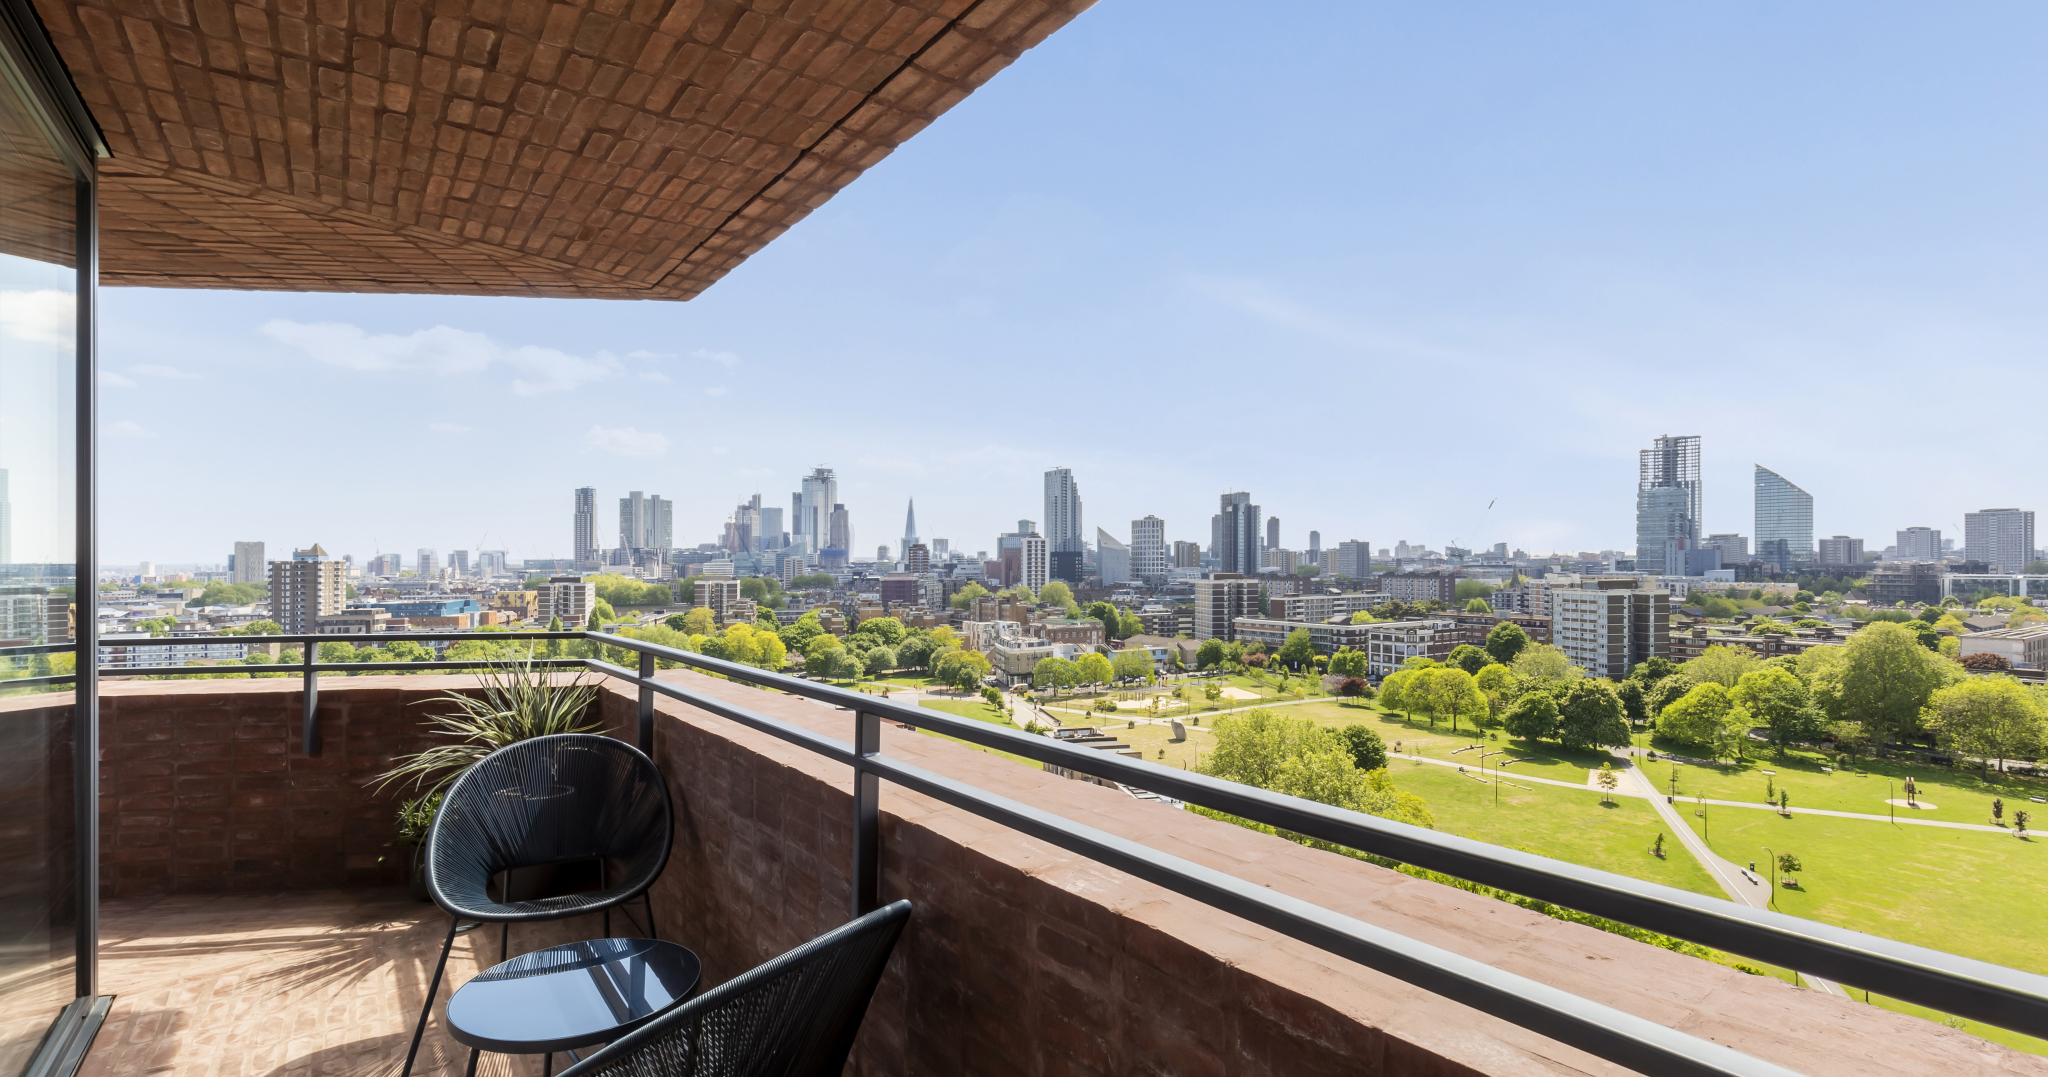 View over North London from the balcony of an apartment in the Hoxton Press development